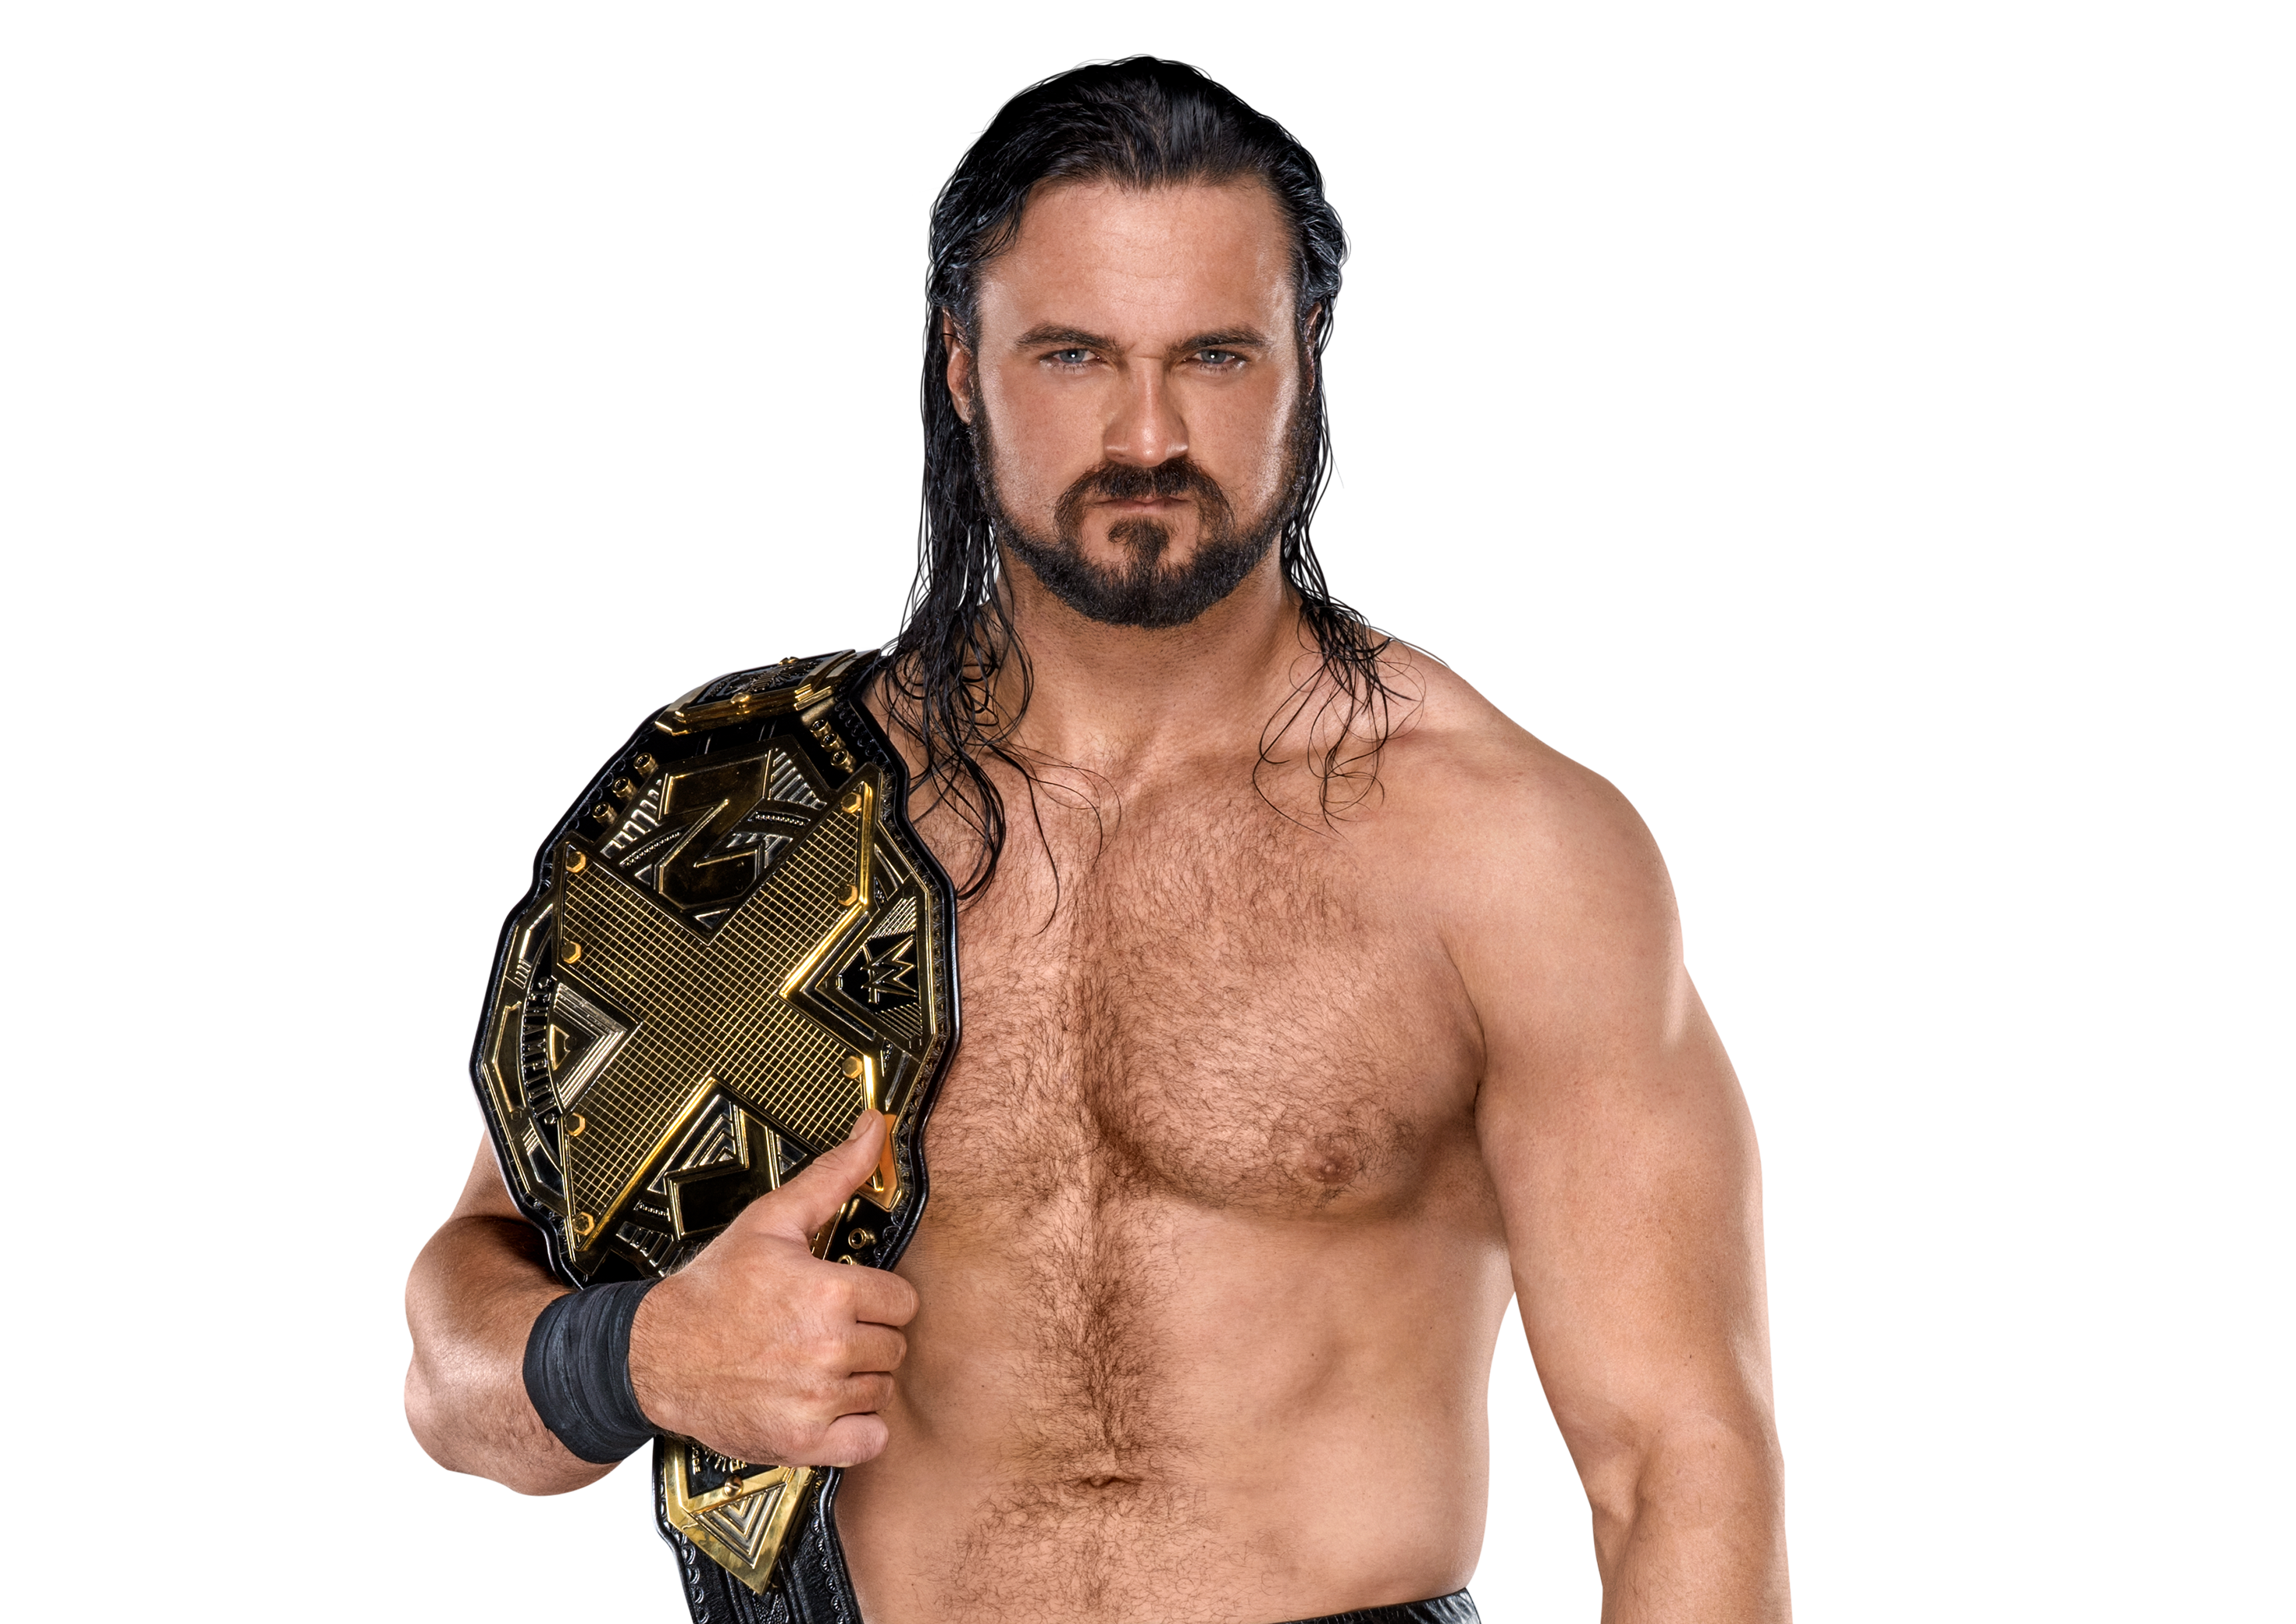 Drew McIntyre new picture : SquaredCircle